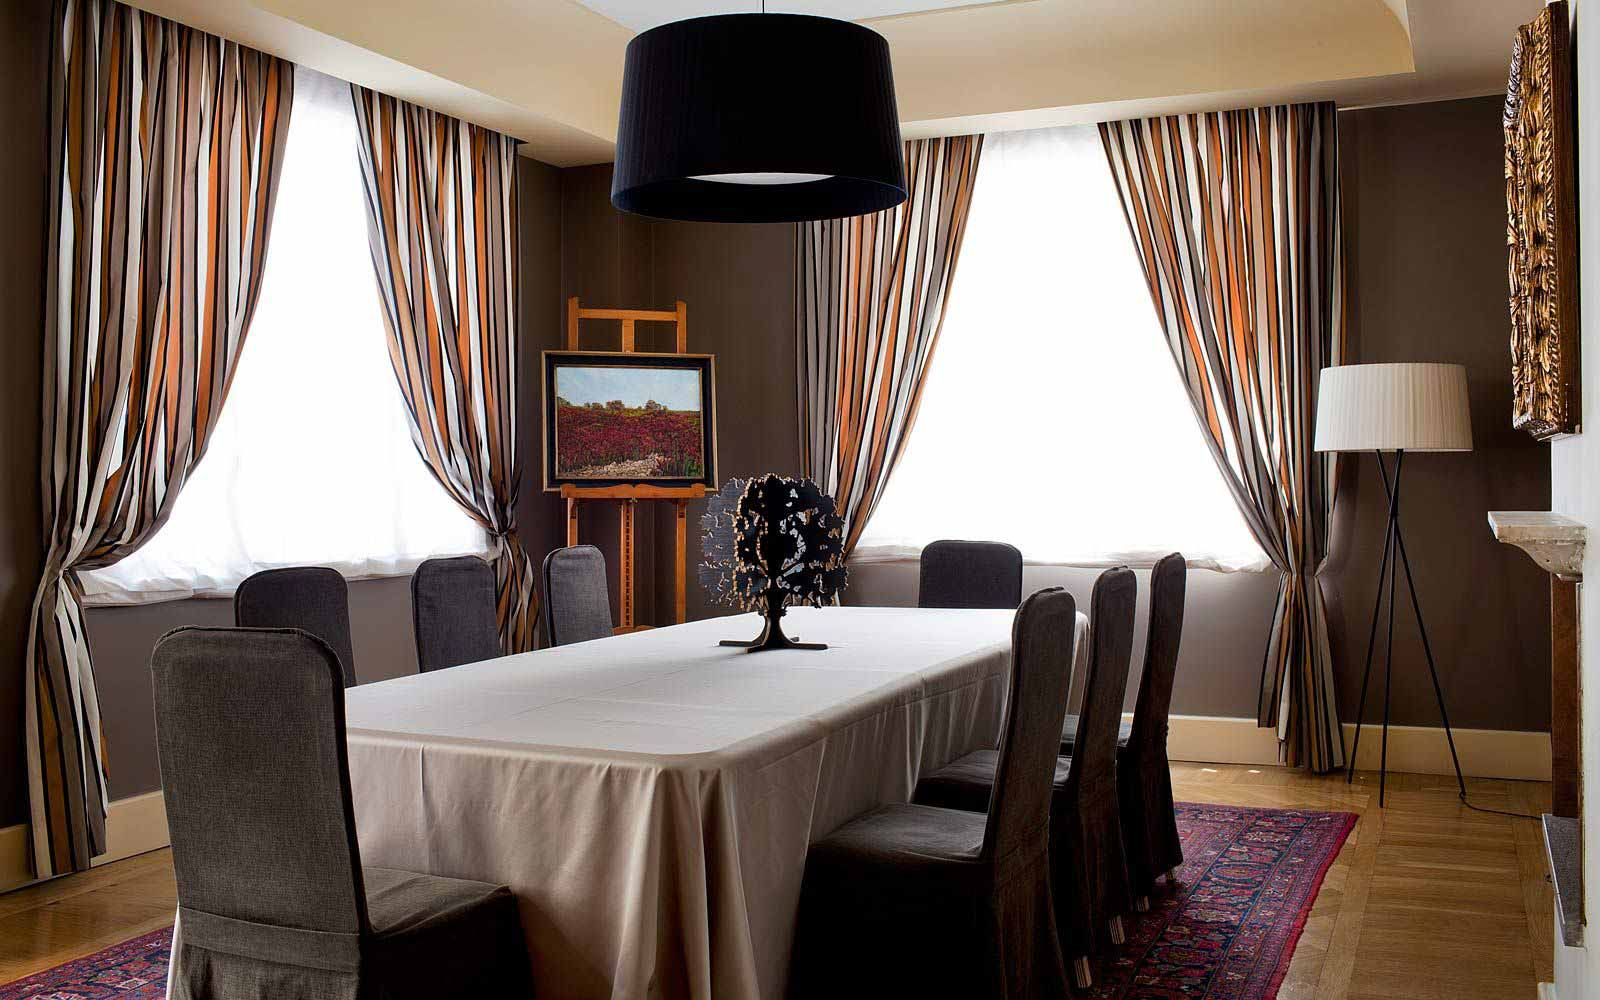 Dining room at Hotel Principe Di Villafranca